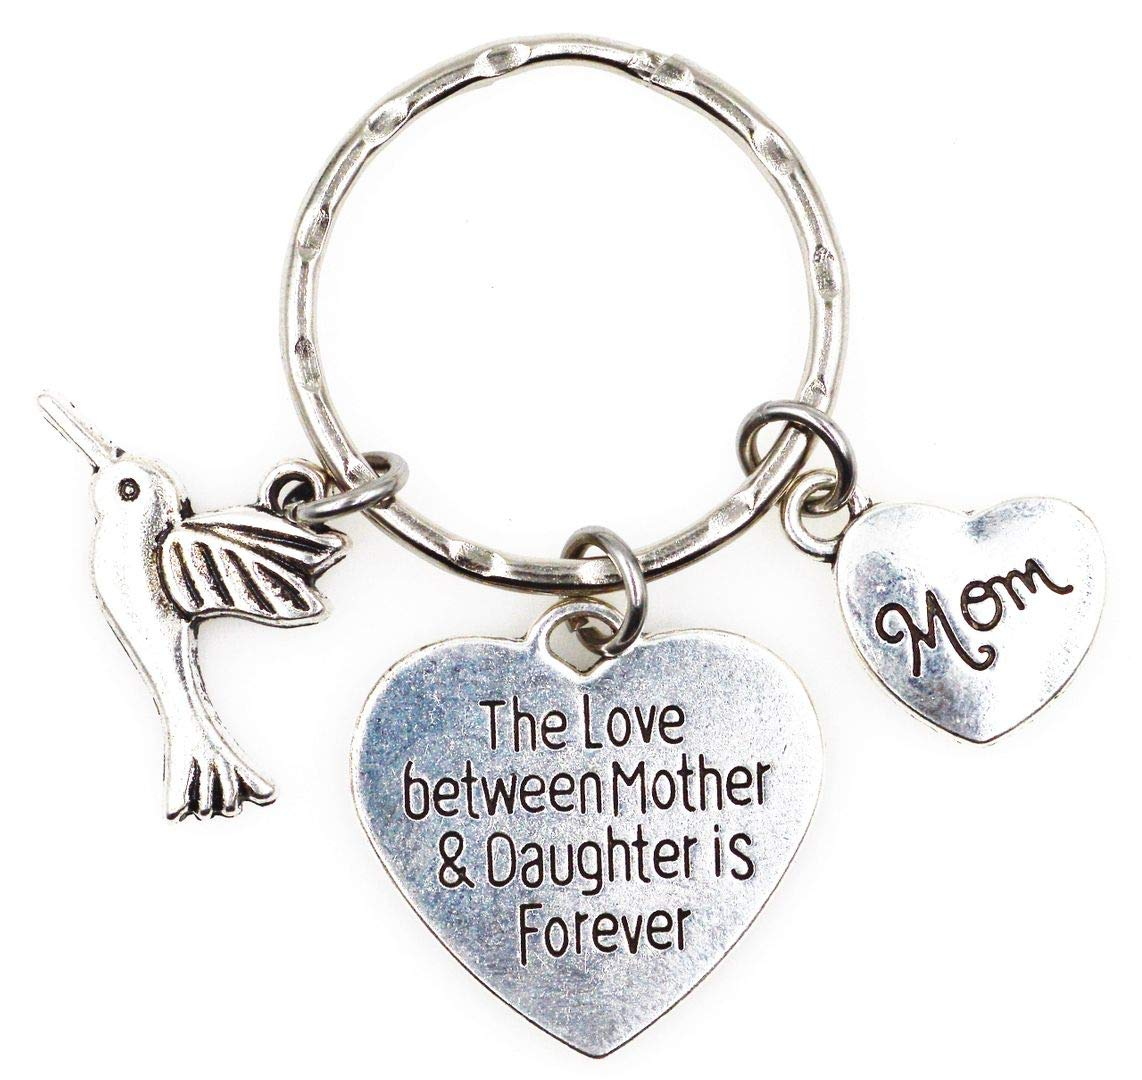 Its All About...You The Love Between Mother and Daughter is Forever Hummingbird Daughter Charm Key Ring Lobster Claw Dog Leash Swivel Hook Clasp Interchangeable Detachable Keychain H5U